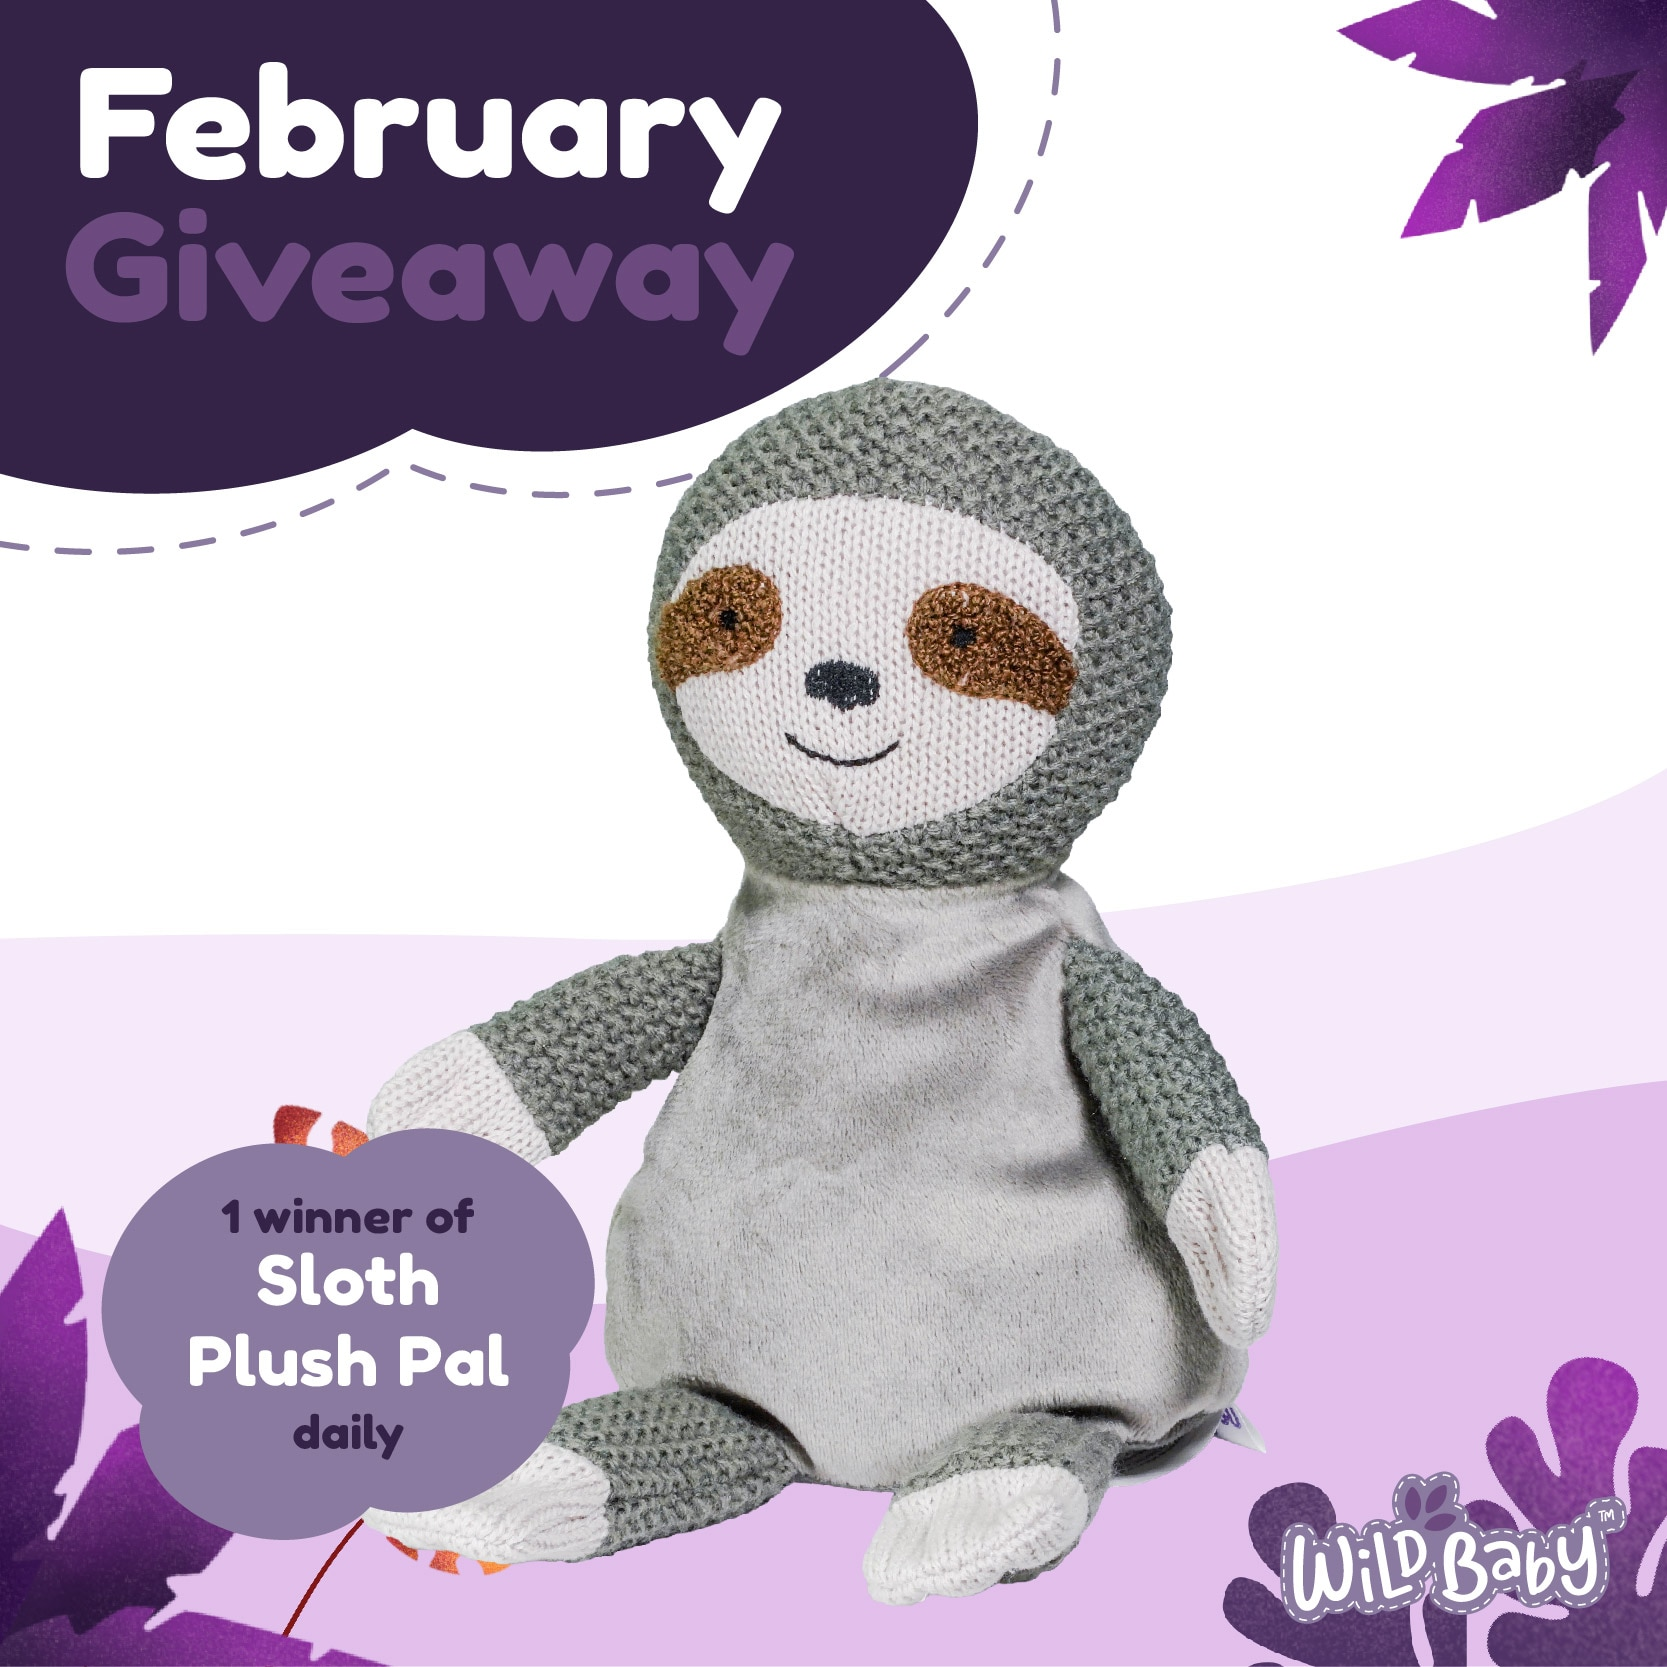 February 2021 Wild Baby Giveaway - Sloth Plush Pal Giveaway Image